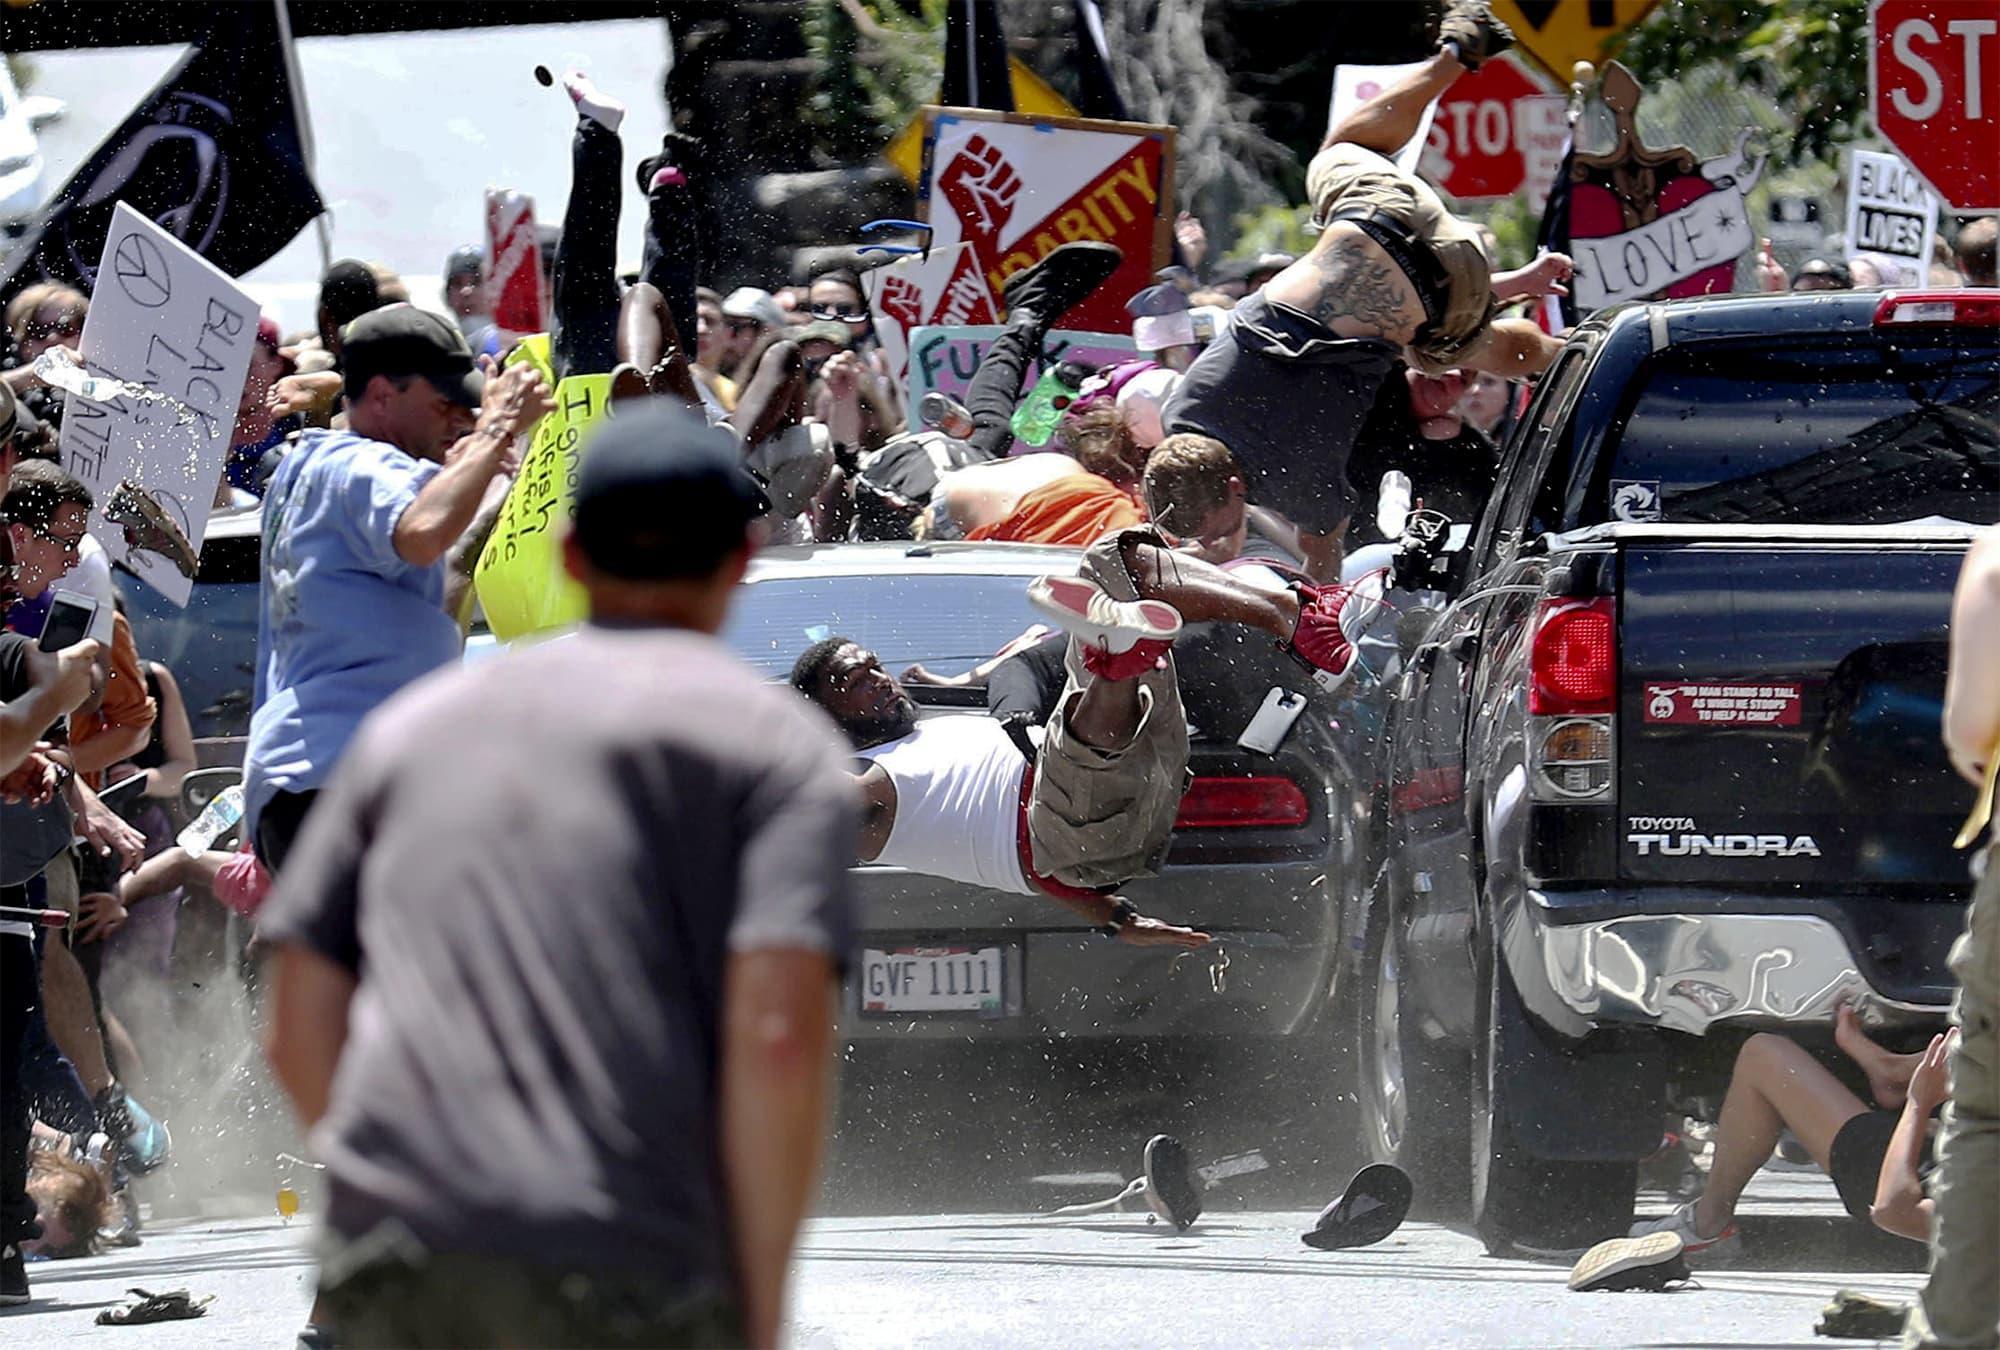 People fly into the air as a vehicle drives into a group of protesters demonstrating against a white supremacist rally in Charlottesville. ─ AP